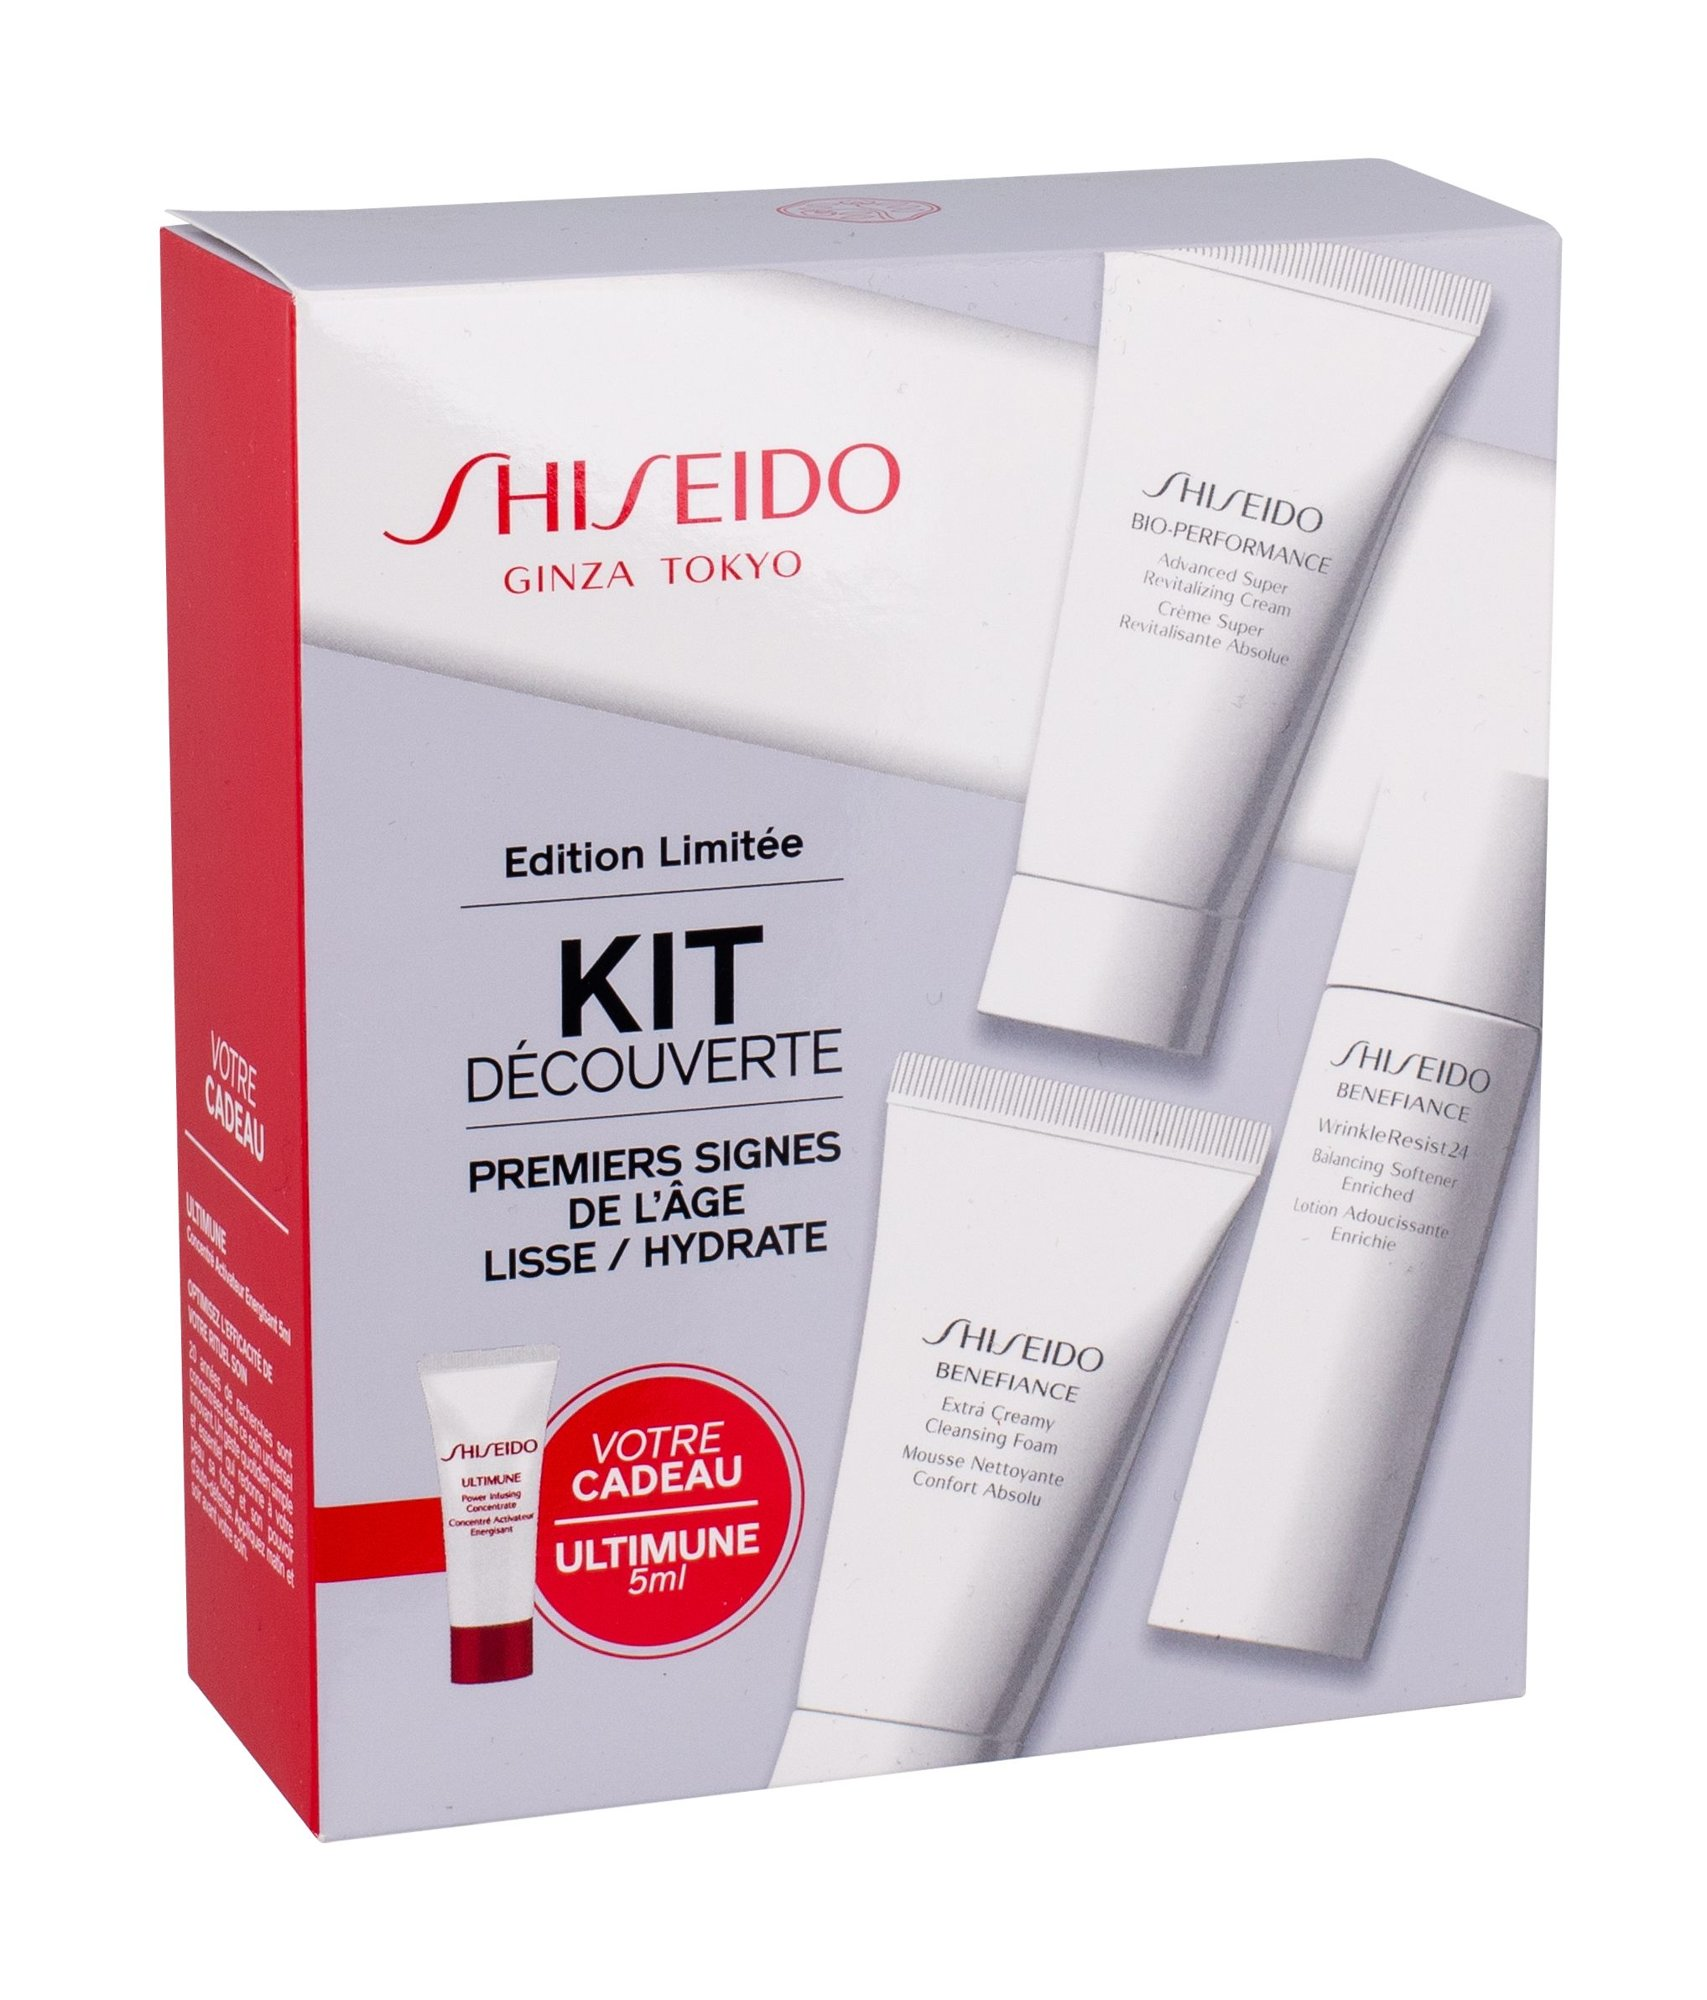 Shiseido Benefiance Cosmetic 30ml